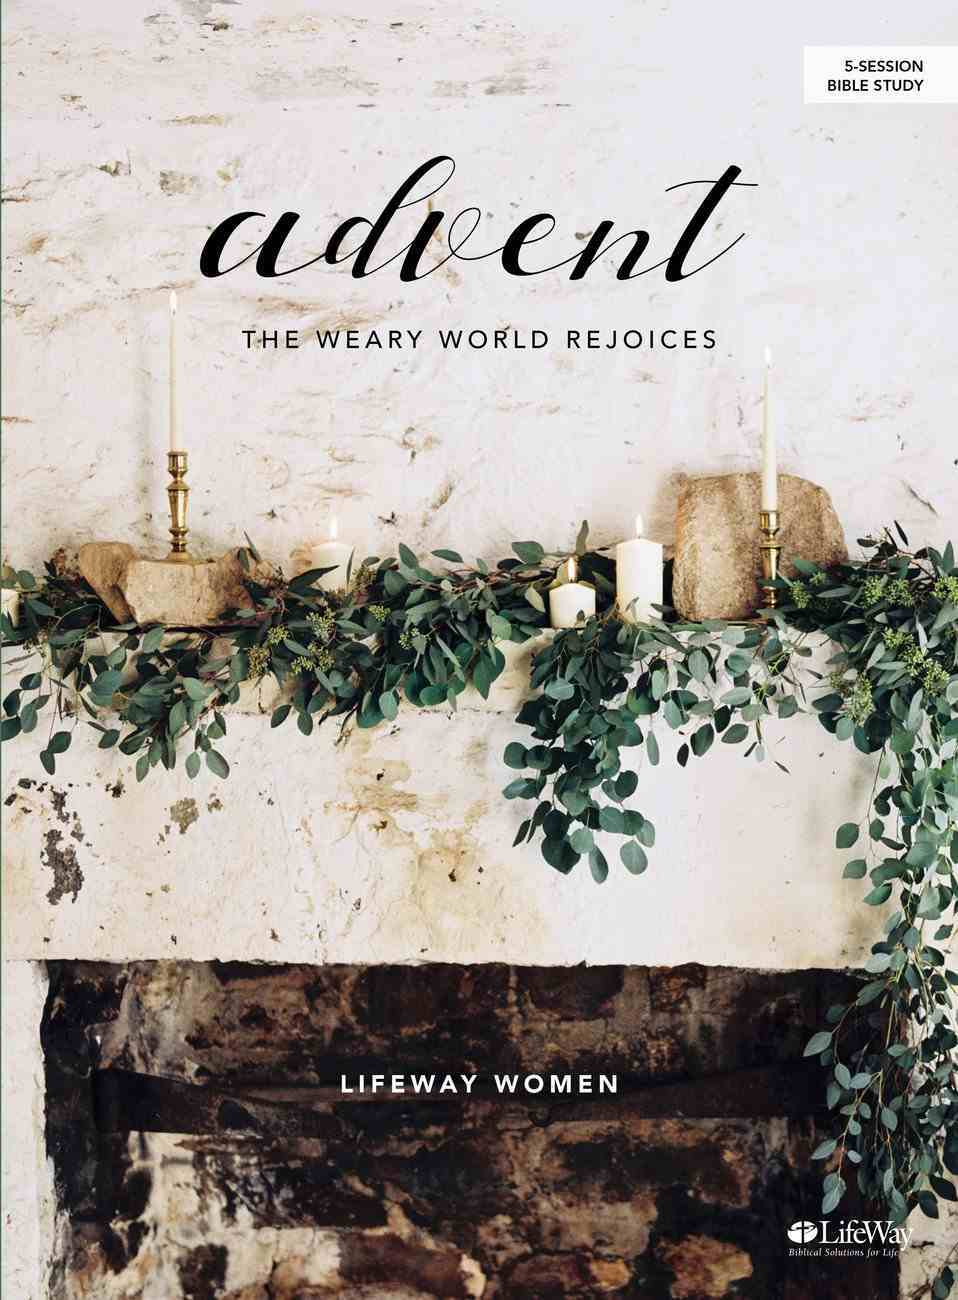 Advent: The Weary World Rejoices (5 Sessions) (Bible Study Book) Paperback